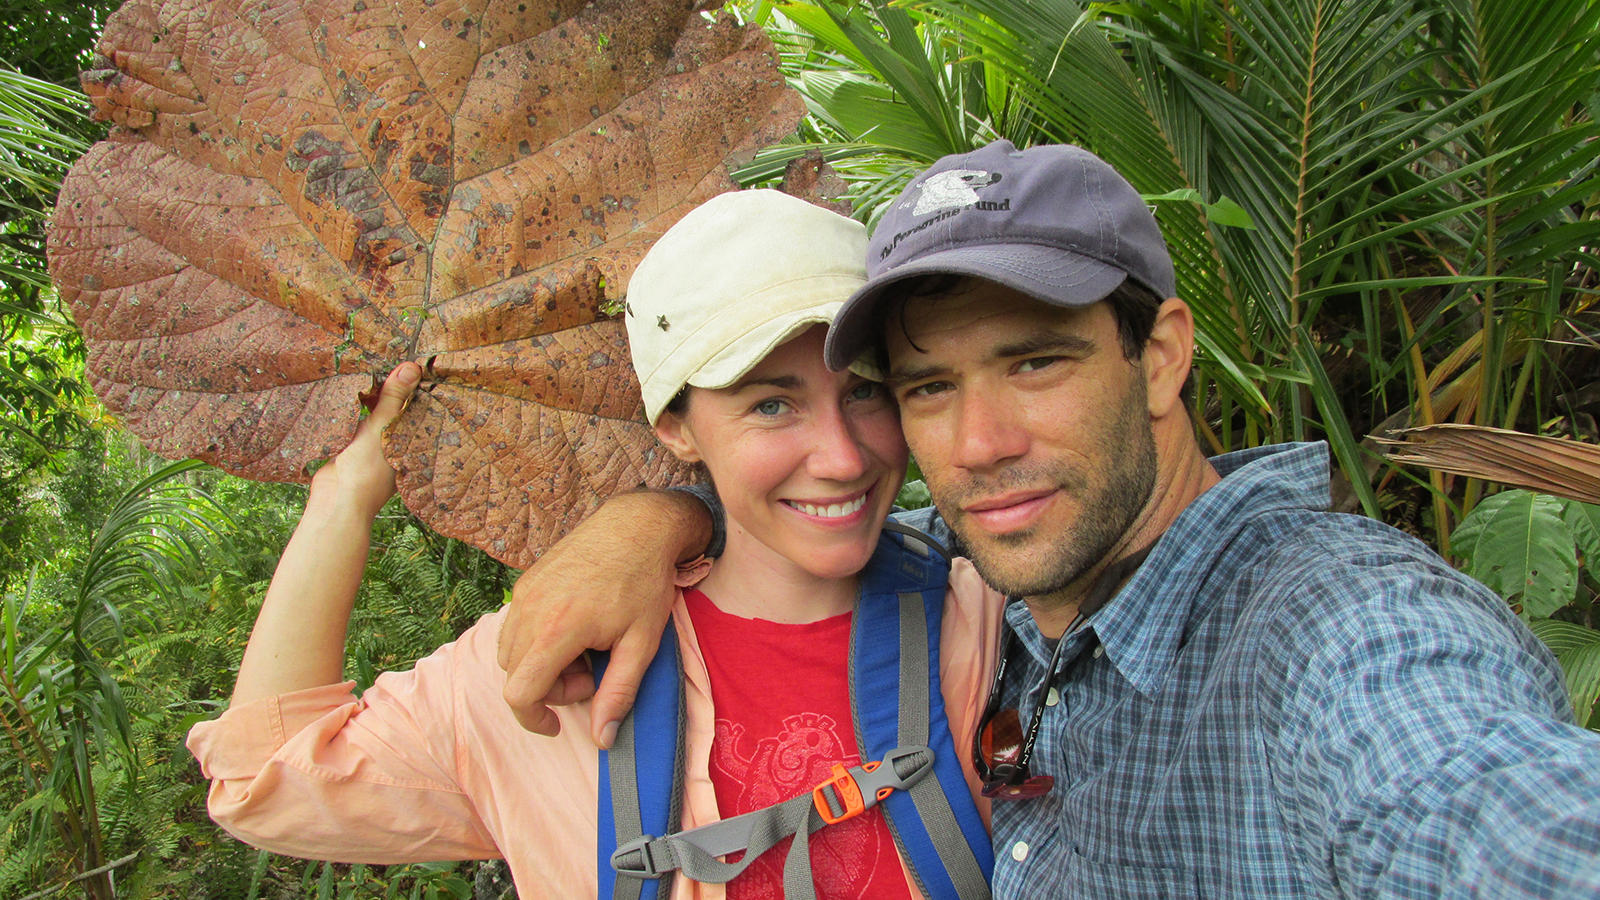 Photo of Christine and Thomas in Dominican Republic. Christine is holding an enormous leaf